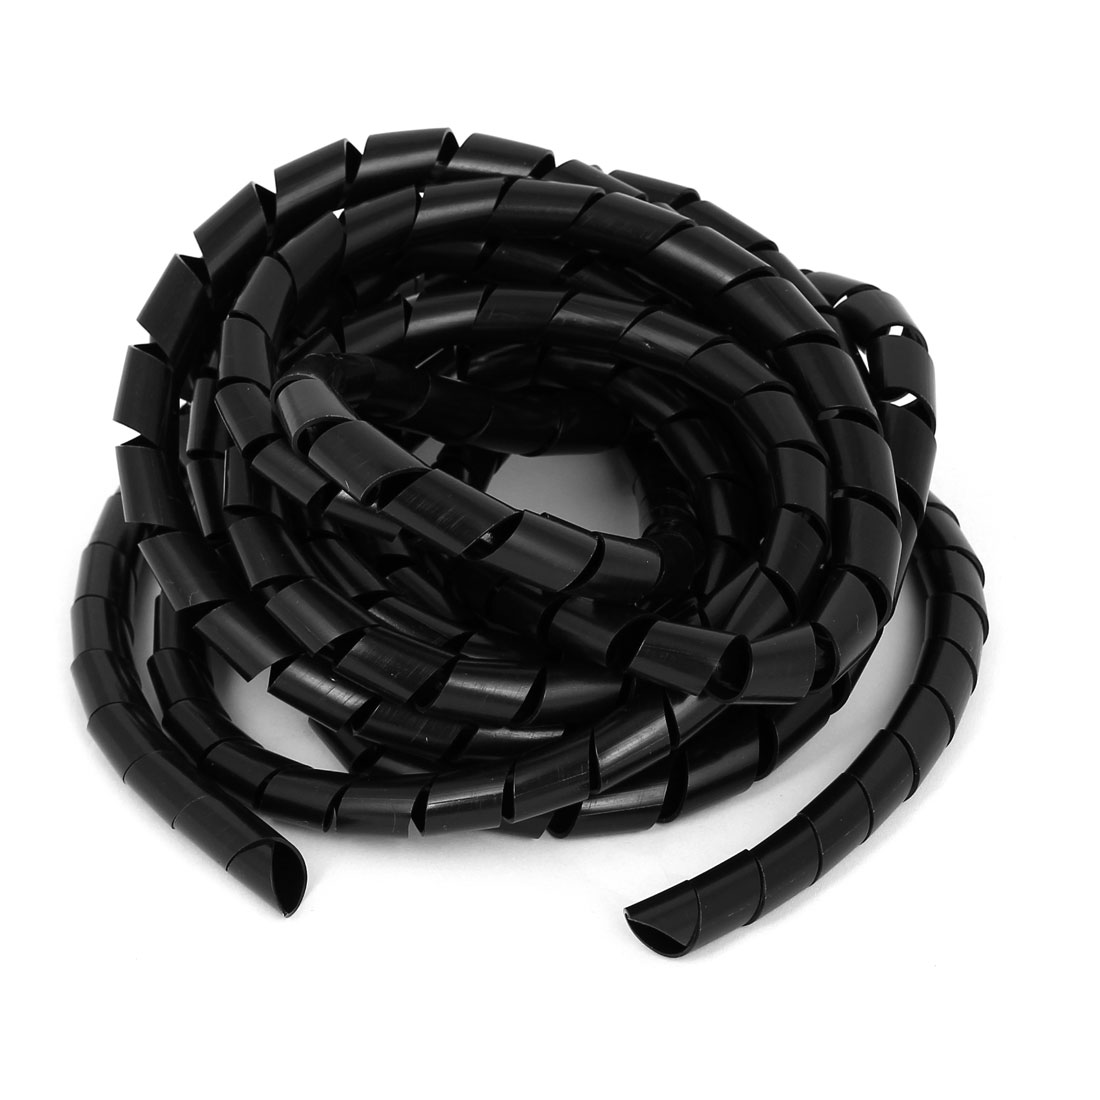 12mmx5.5m Spiral Cable Wire Wrap Tube Computer Cinema TV Management Cord Black